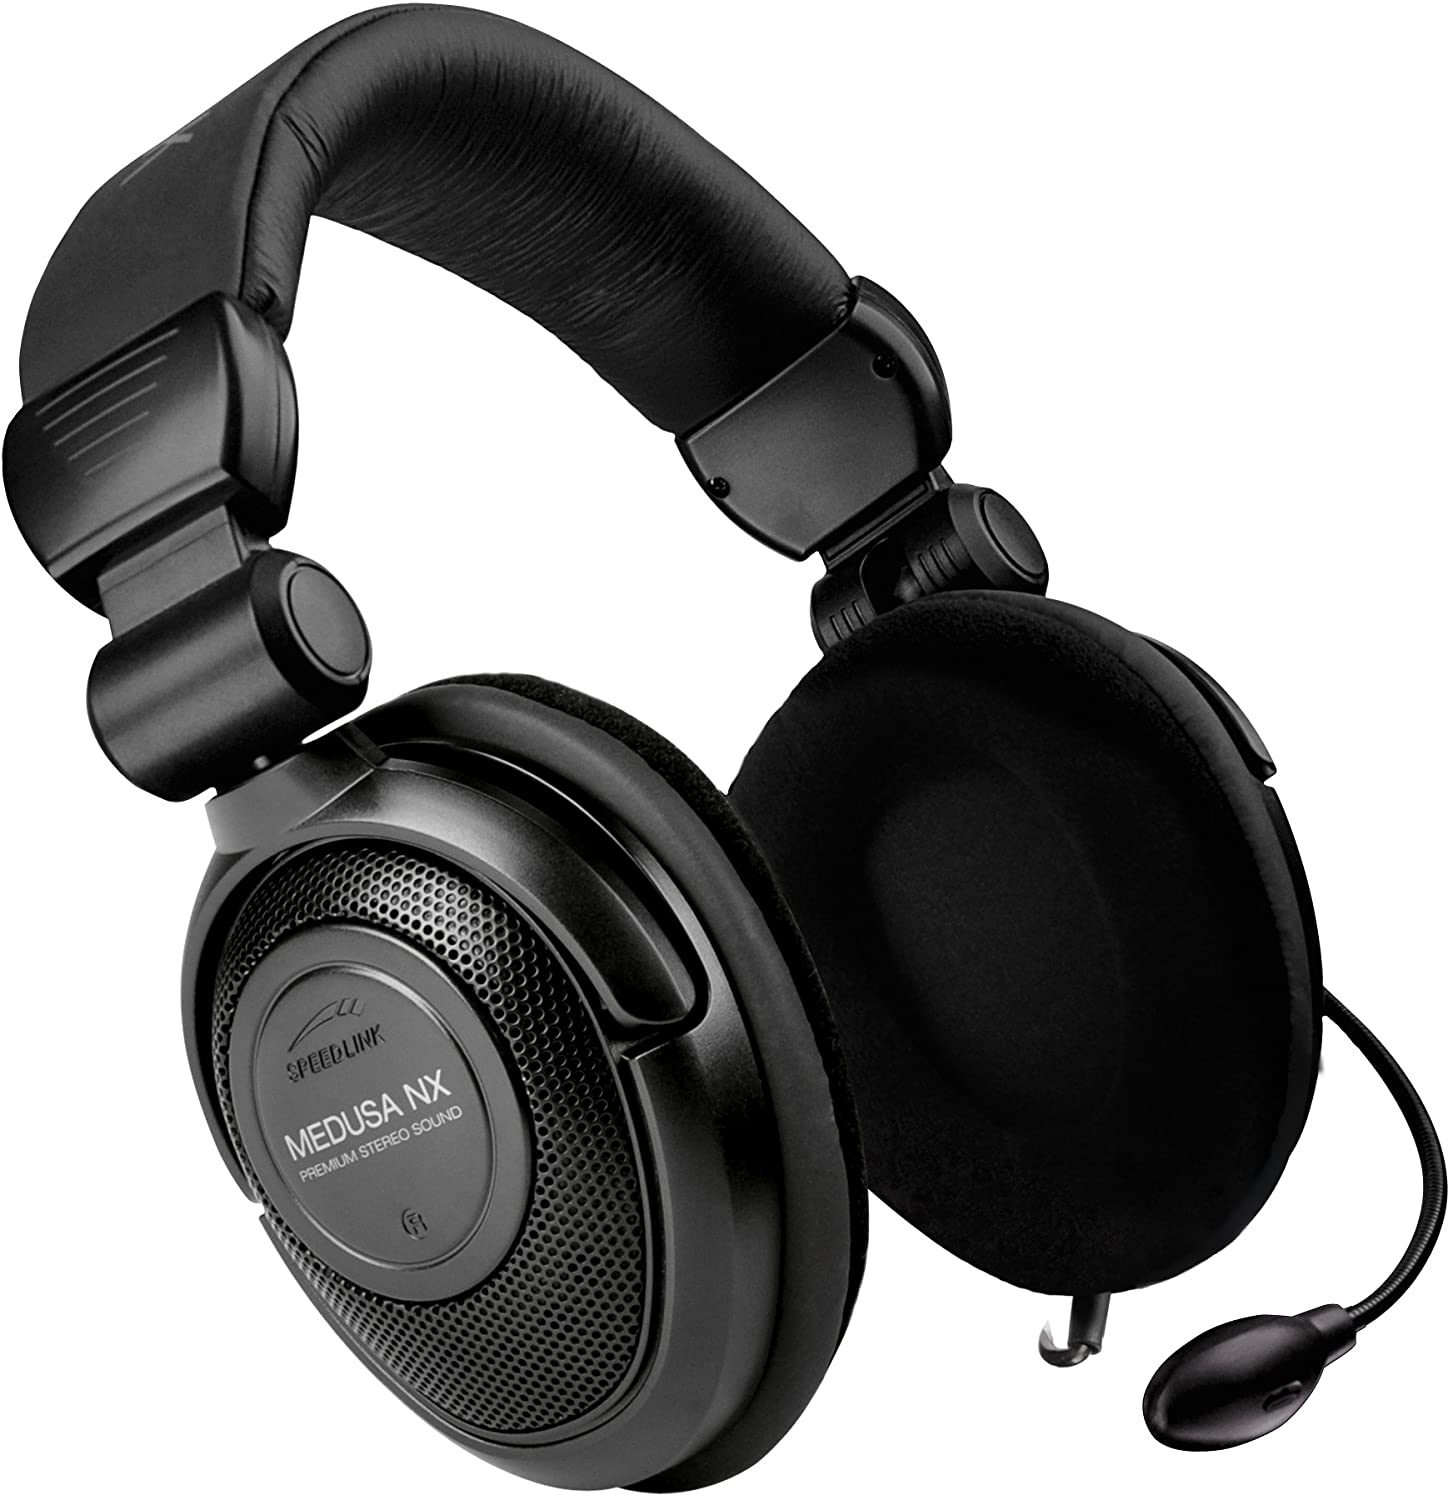 bose gaming headphones. speedlink medusa nx core gaming stereo headset - black (xbox 360/pc): amazon.co.uk: pc \u0026 video games bose headphones